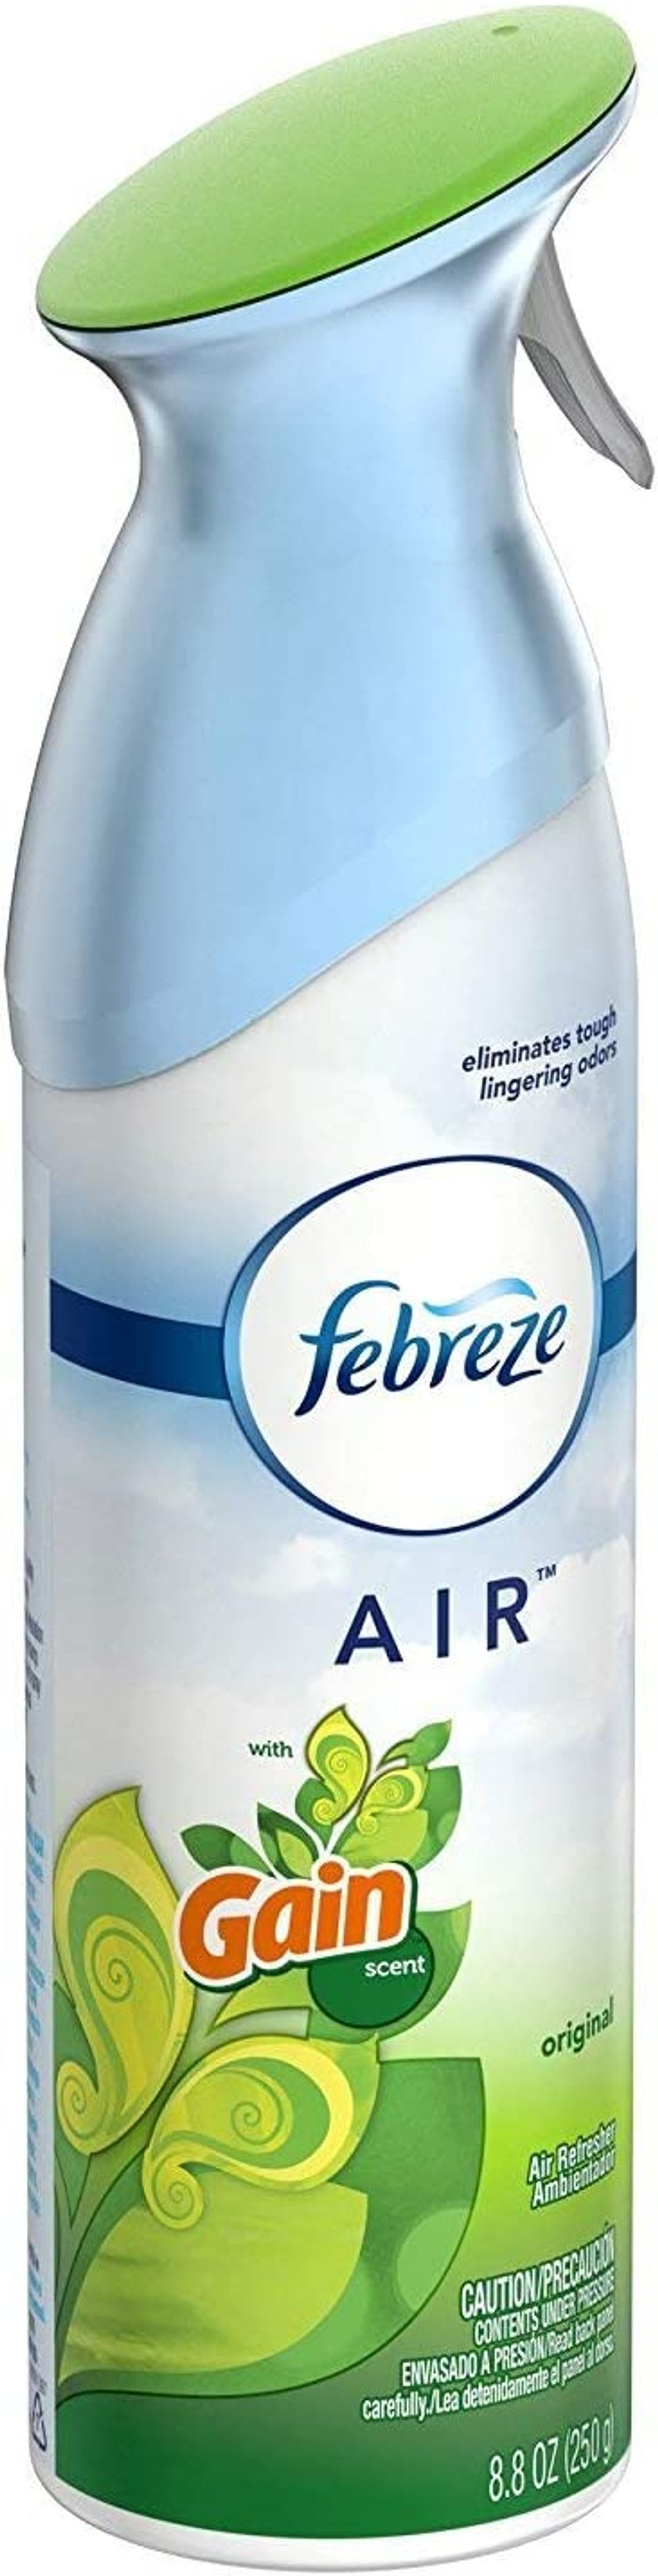 Febreze Air Refresher - Gain Original Scent - with New OdorClear Technology - Net Wt. 8.8 OZ (250 g) Per Bottle - Pack of 2 Bottles